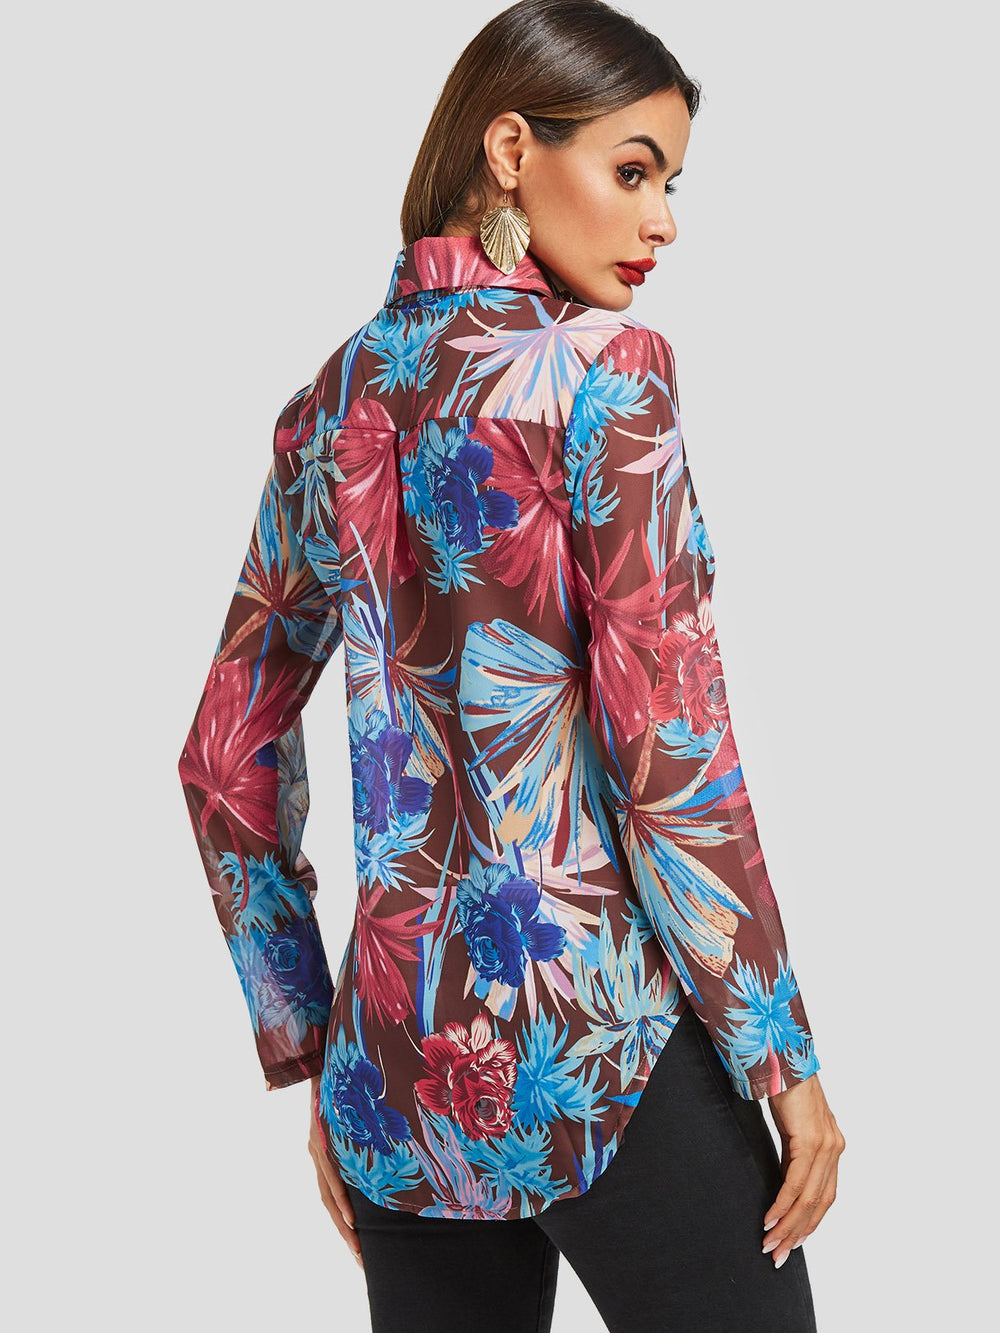 Pretty Blouses For Women